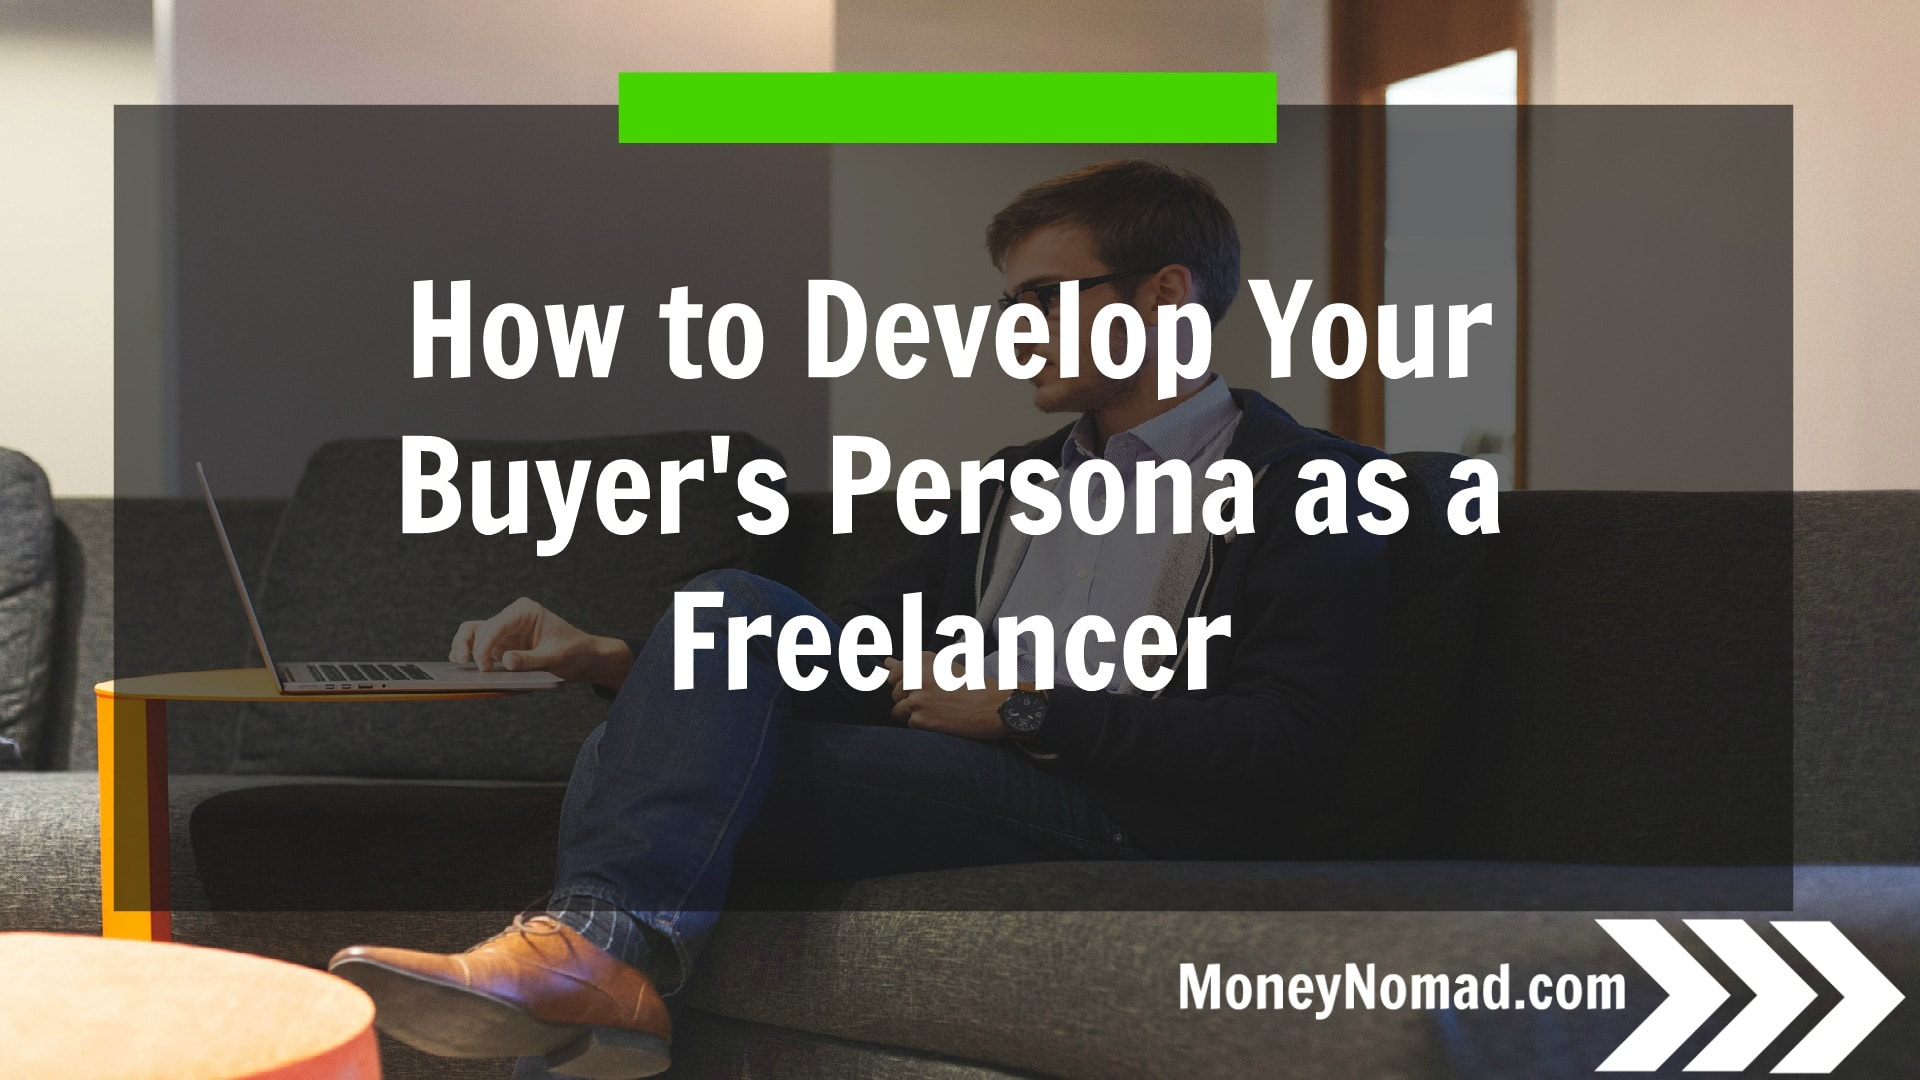 MN-How to Develop Your Buyer's Persona as a Freelancer